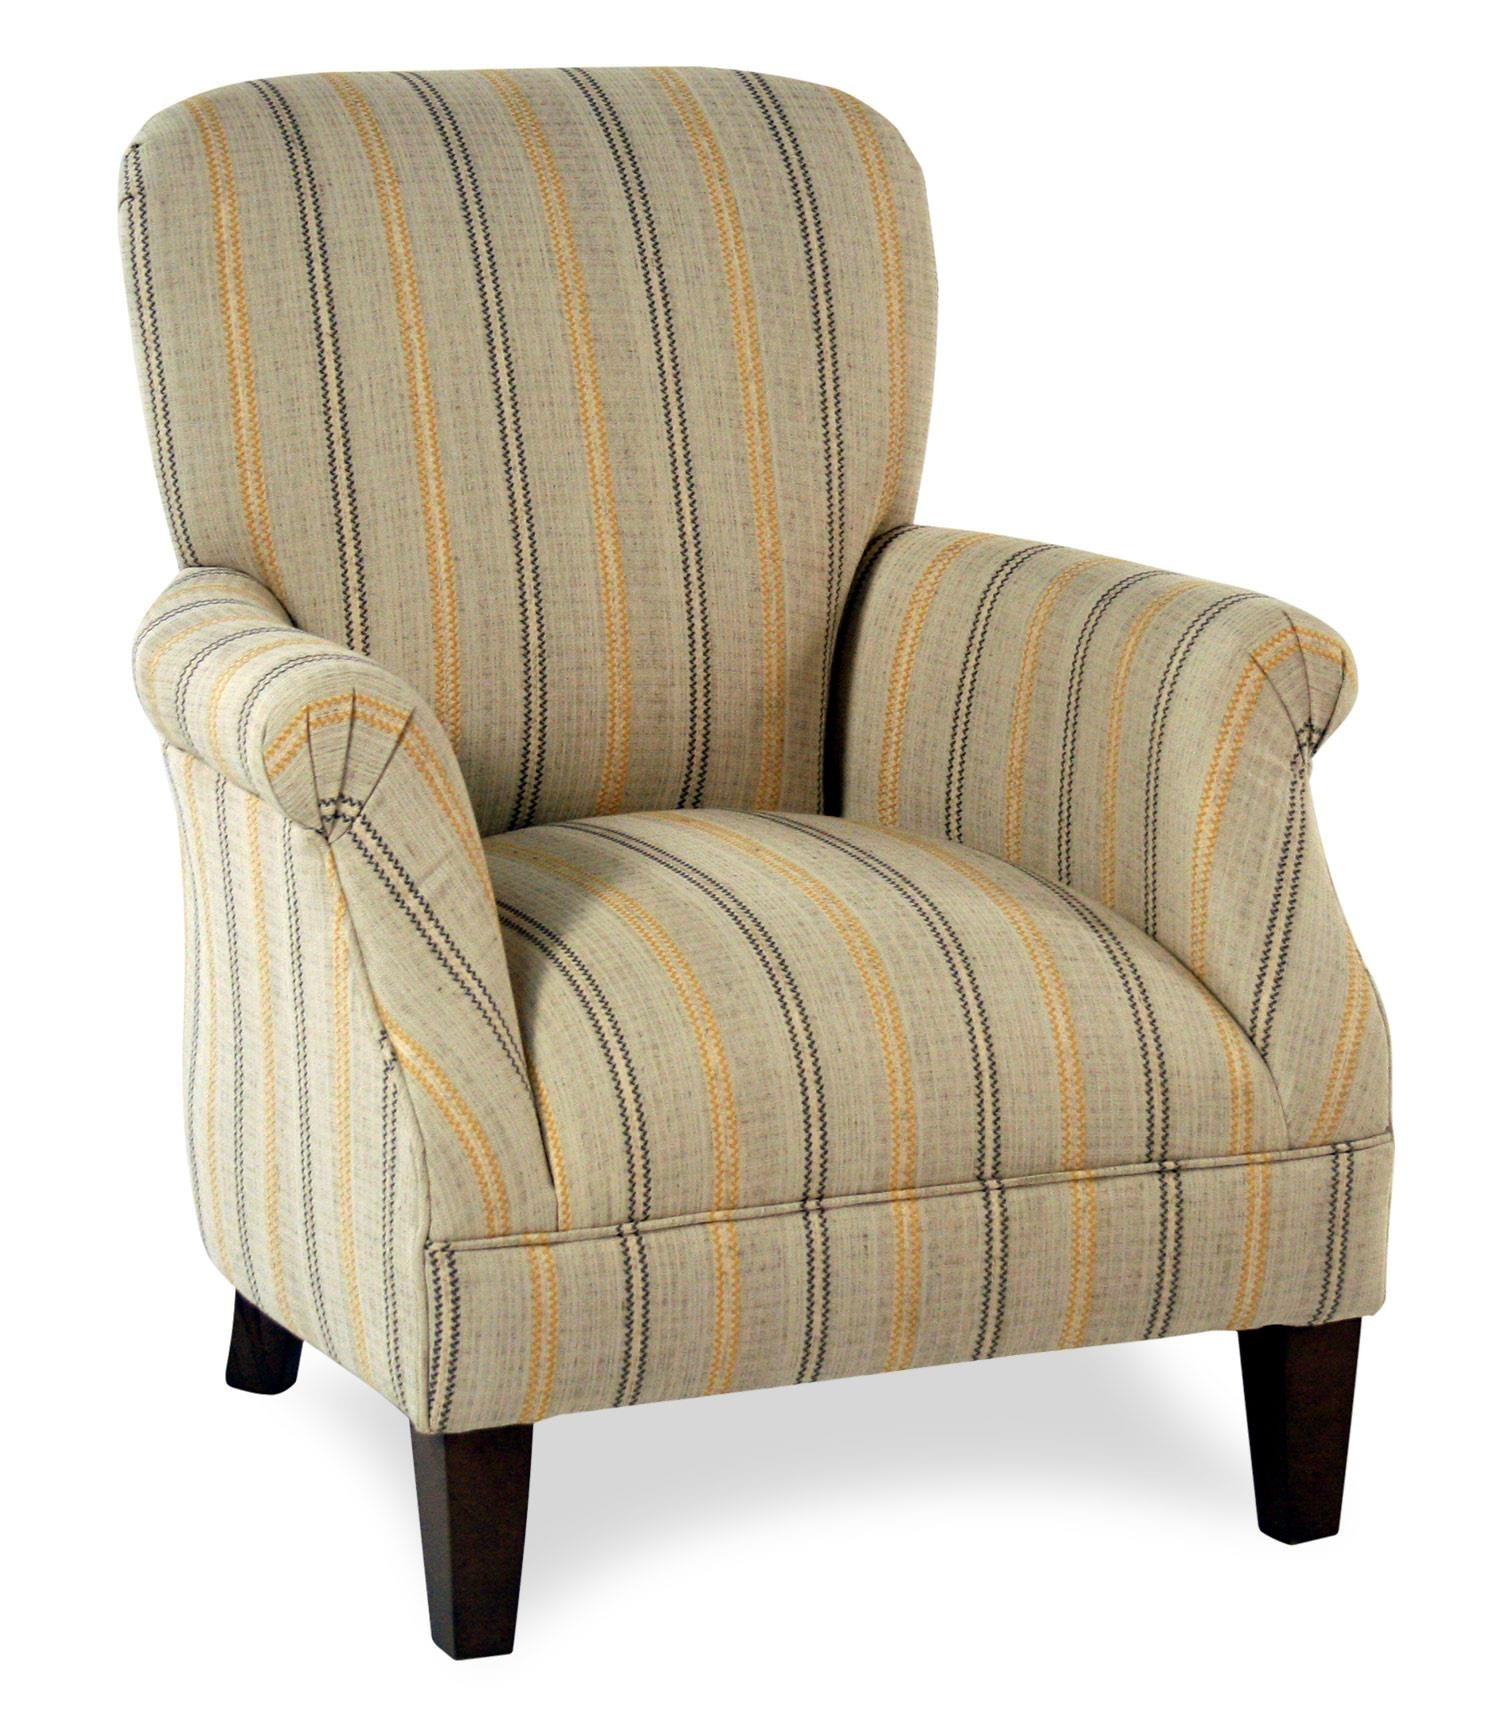 Cozy Life Accent Chairs Contessa Accent Chair - Item Number: 053510-HILLIARD02